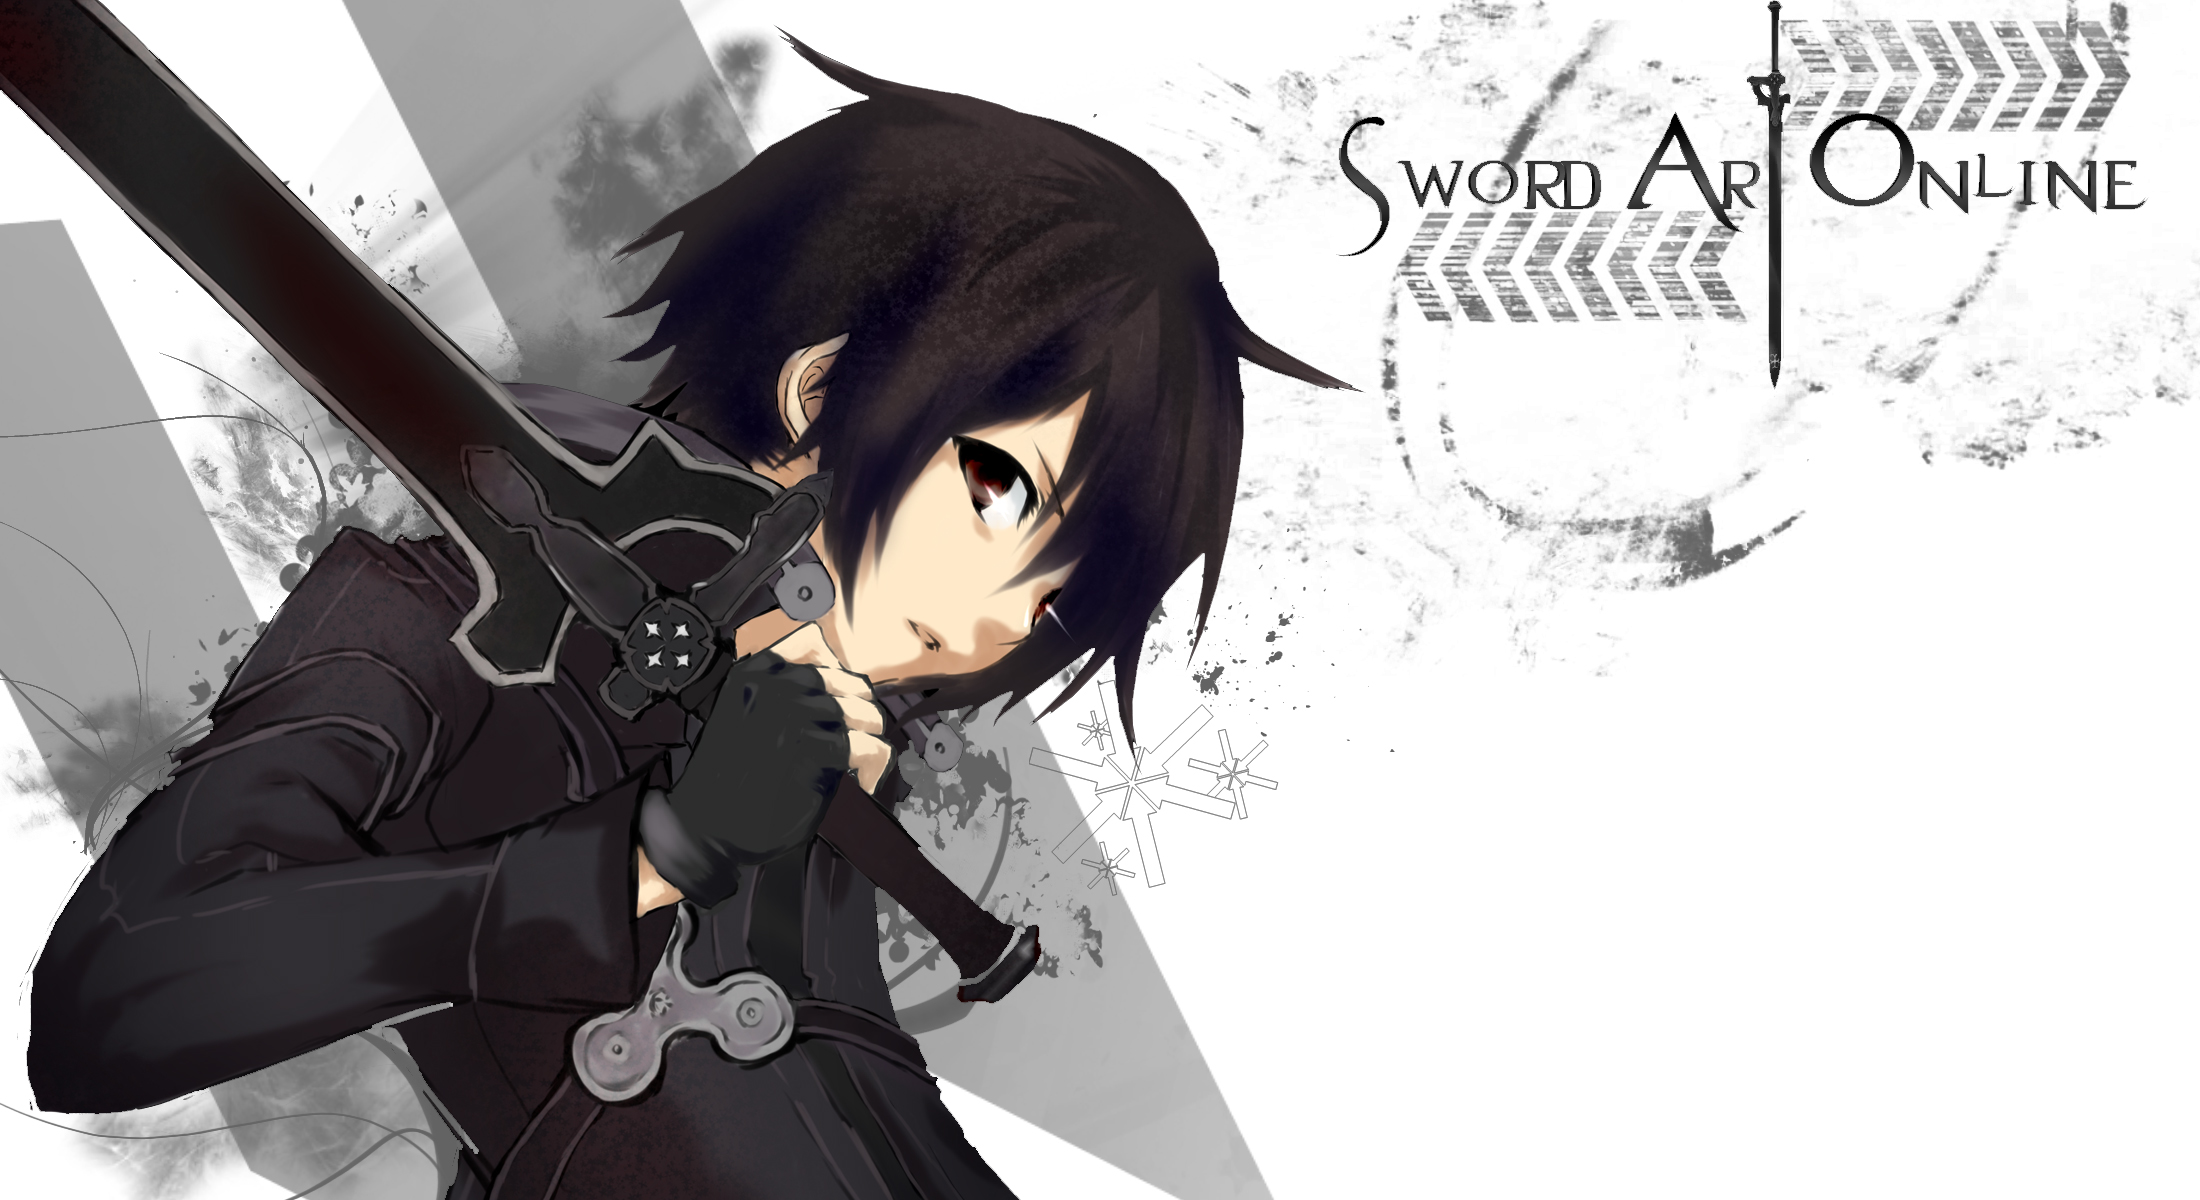 Sword Art Online Kirito Wallpaper by Inzane21 on DeviantArt